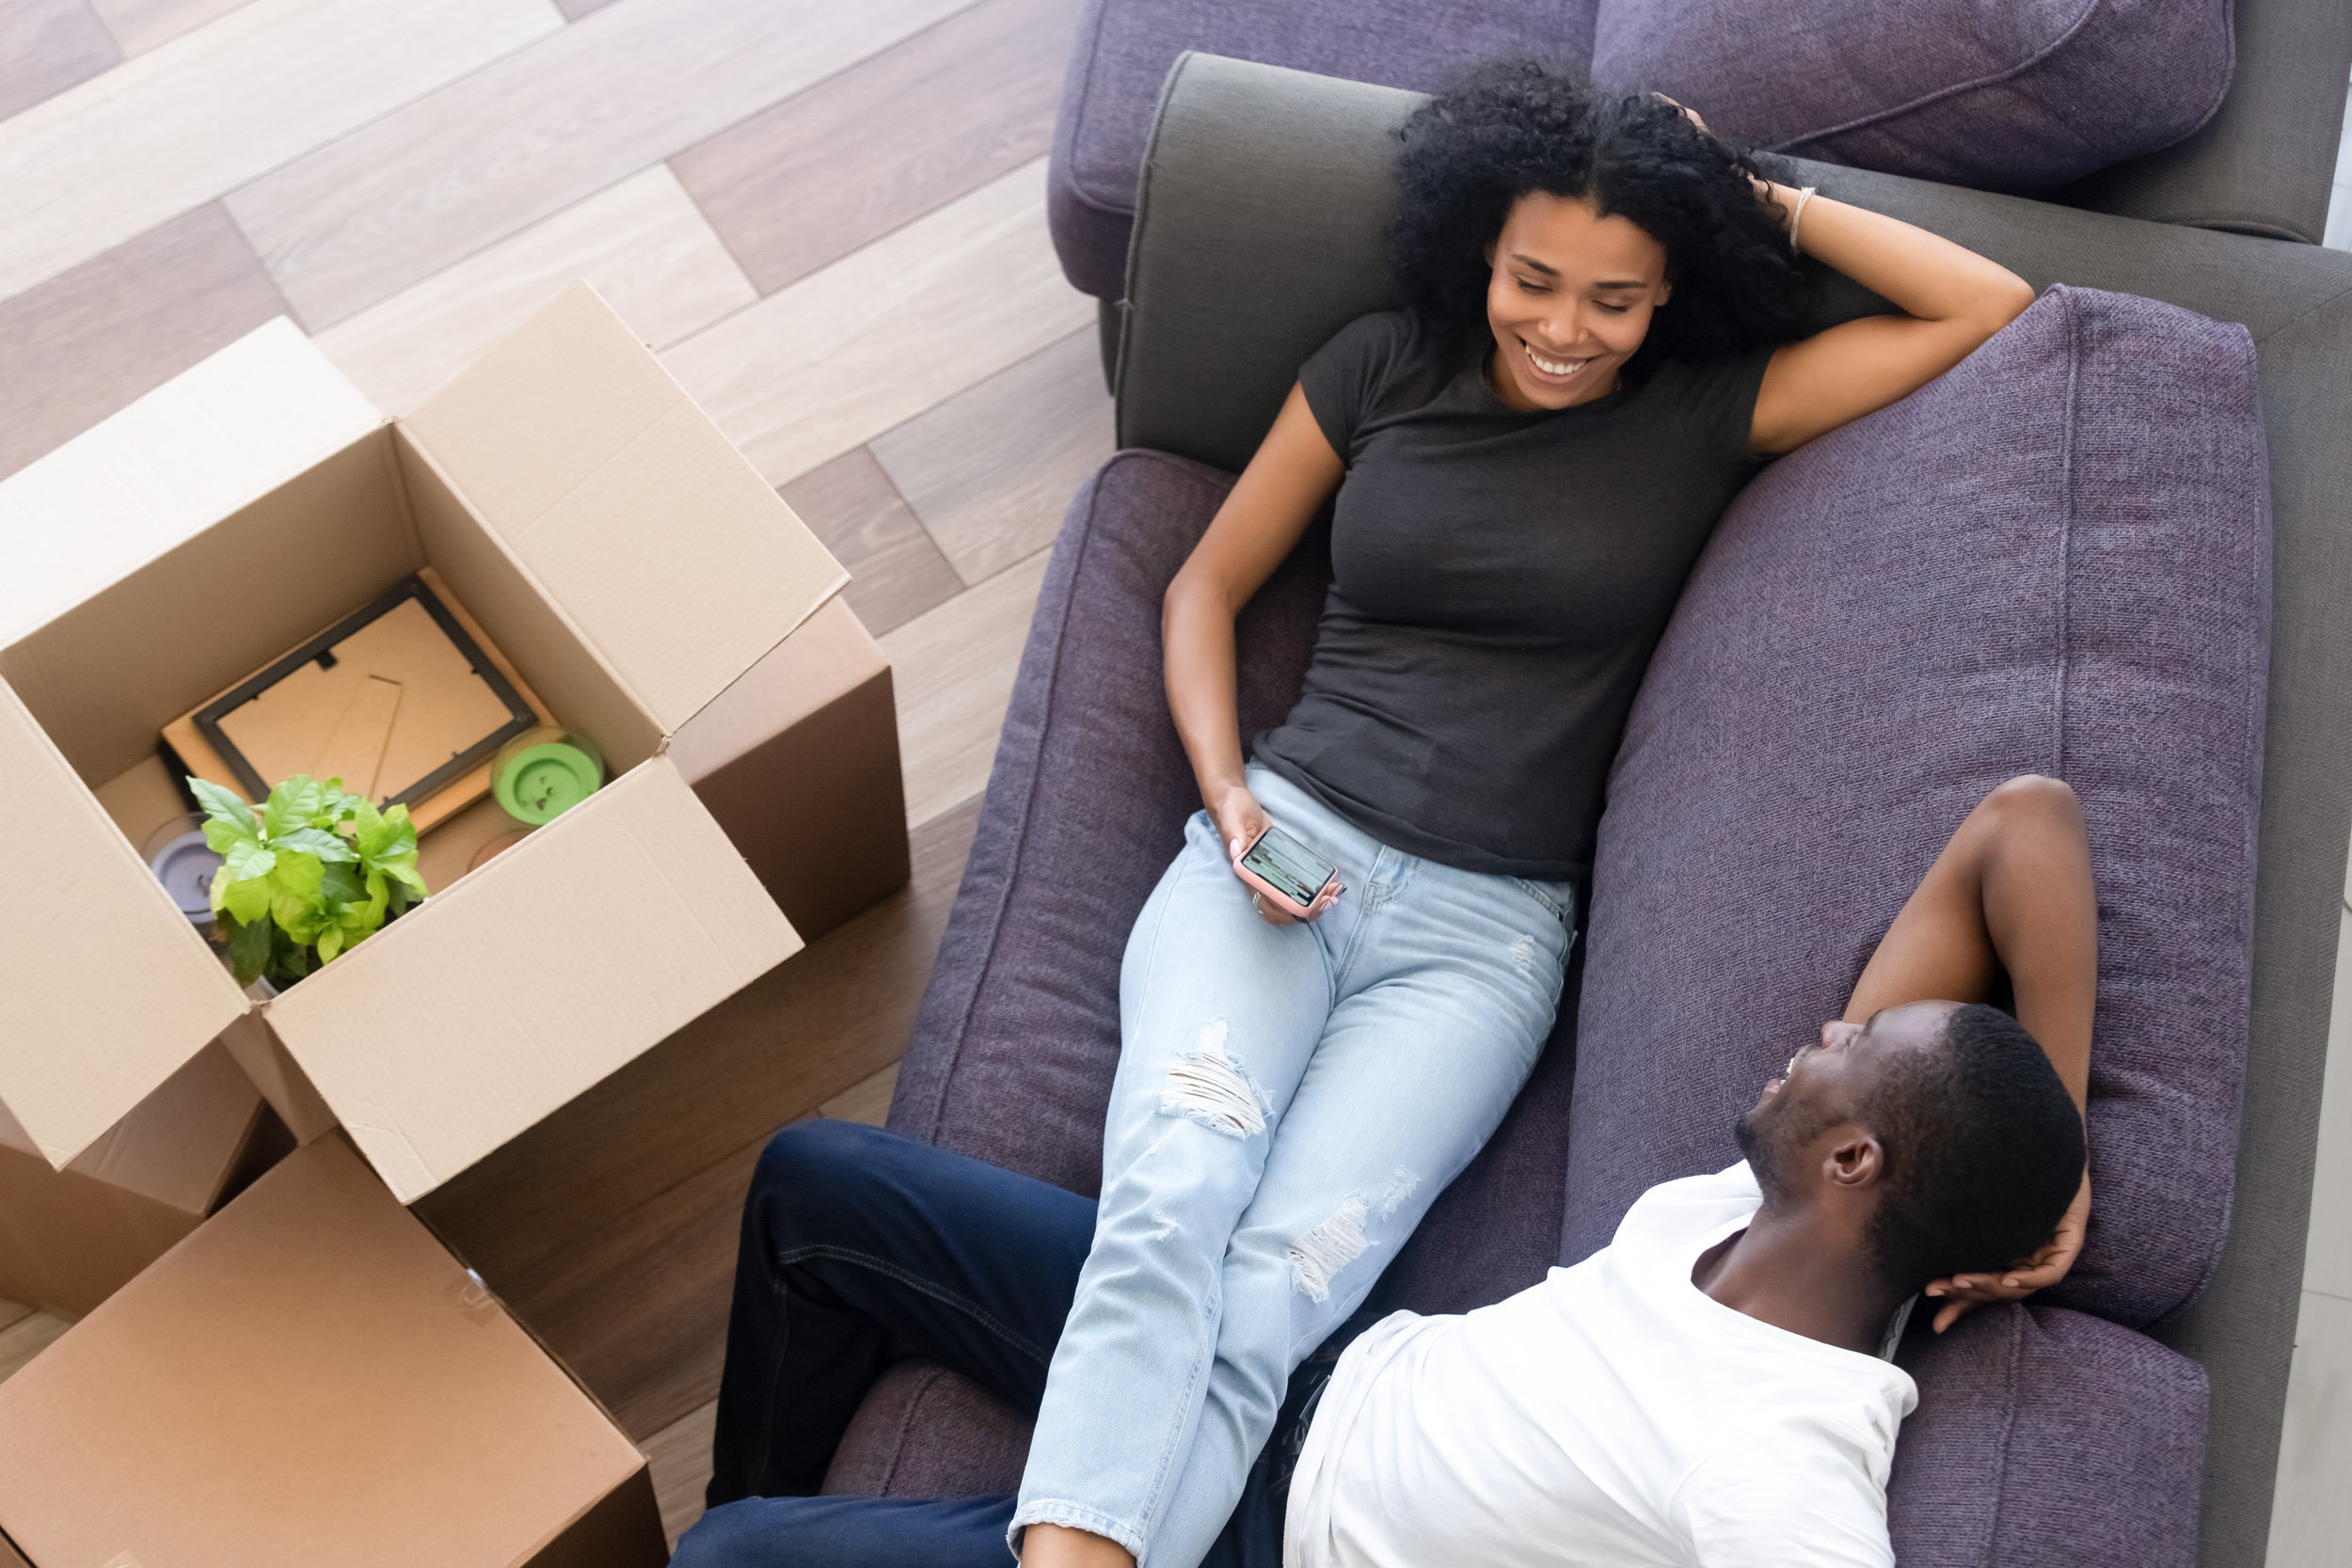 Moving Can Be A Hassle But We Can Help!  - Who couldn't use an extra set of hands when it comes time to move?  It's an exciting time but also a lot of work! Book your custom move in/out cleaning and unpacking services in less than 60 seconds.